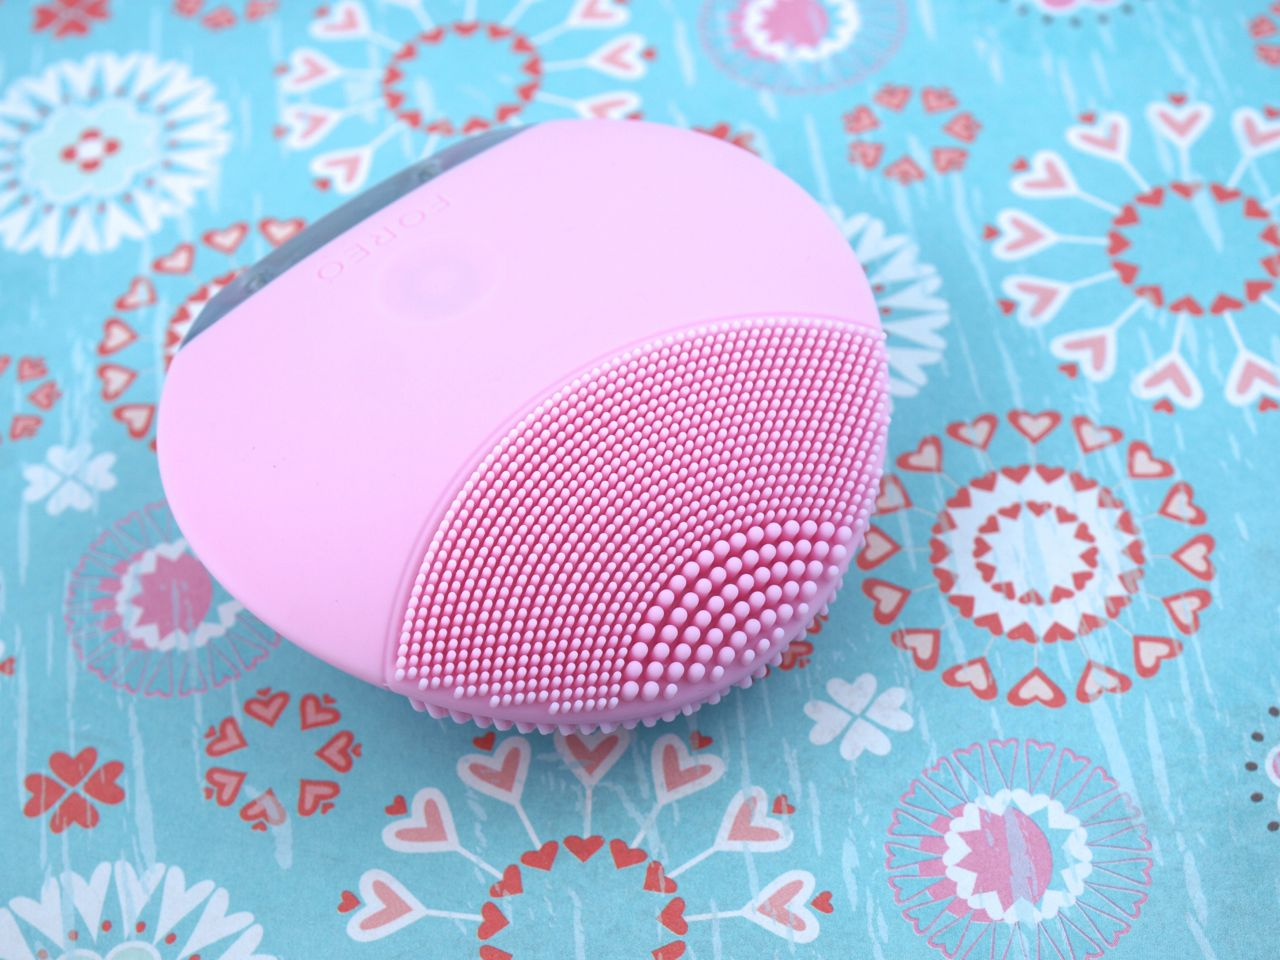 Foreo Luna Mini T-Sonic Facial Cleansing Device: Review